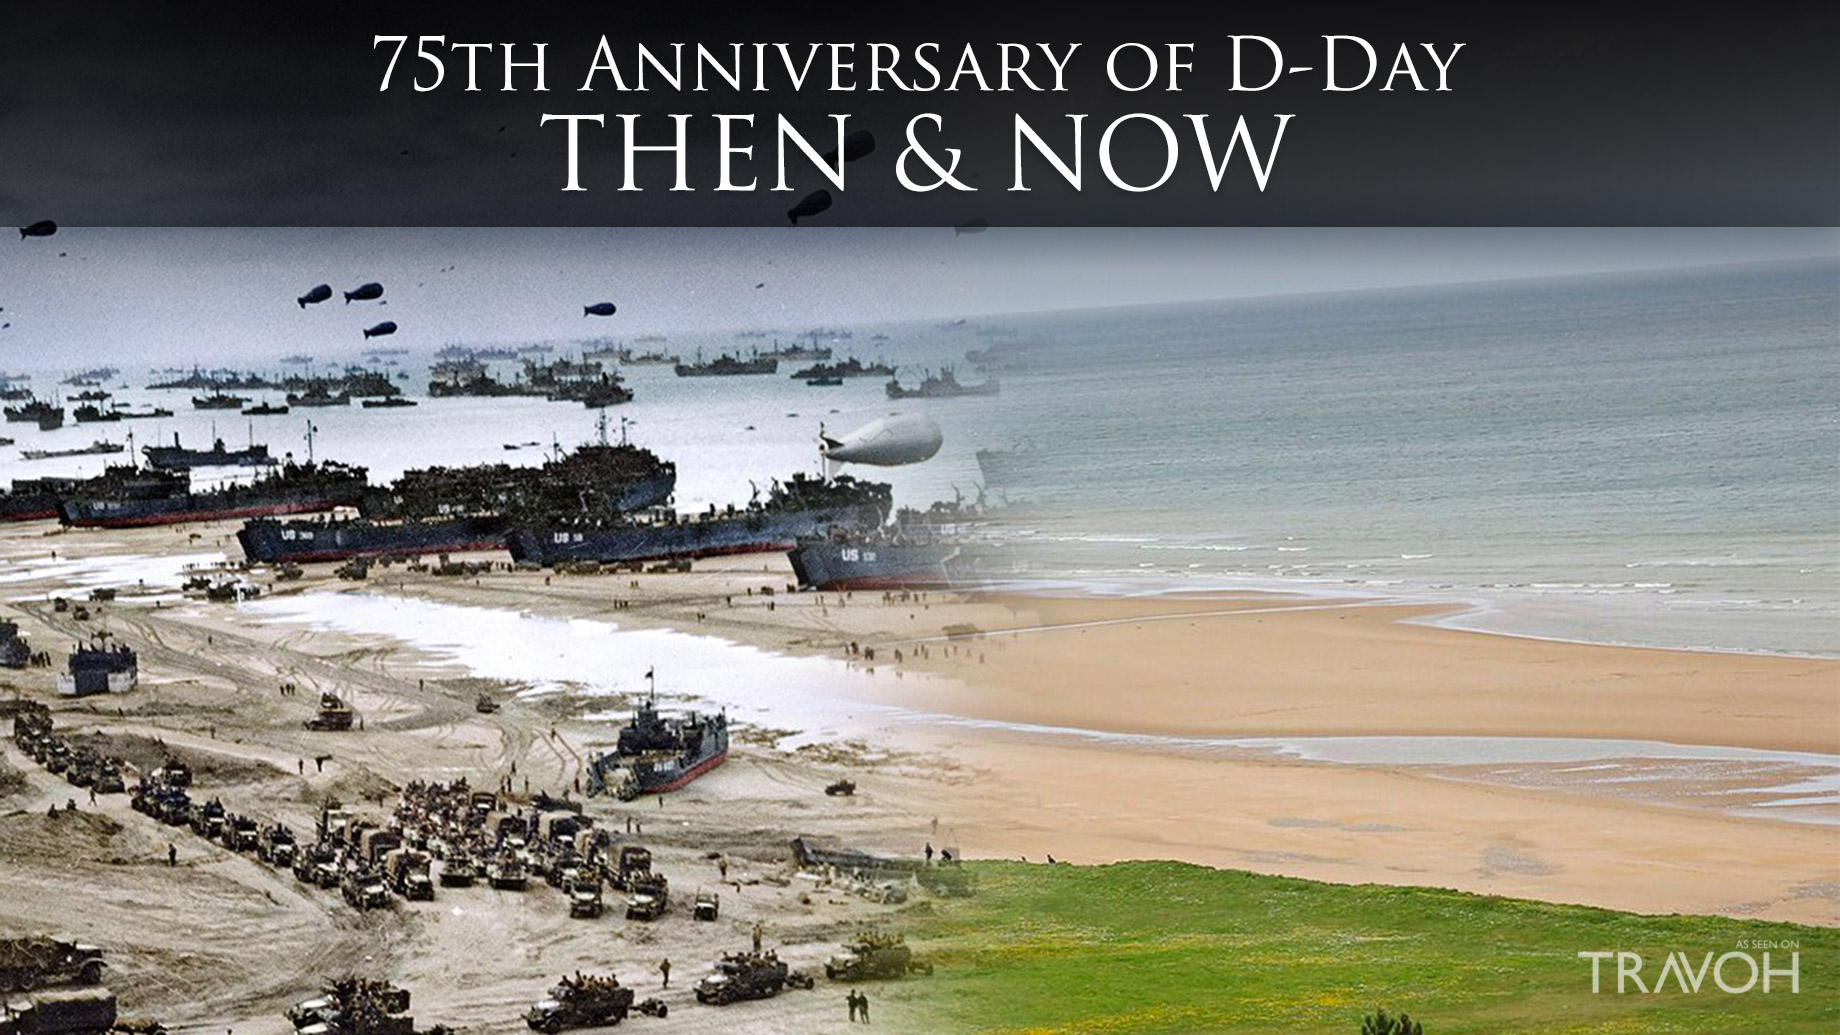 75th Anniversary of D-Day - A Look Back Then & Now